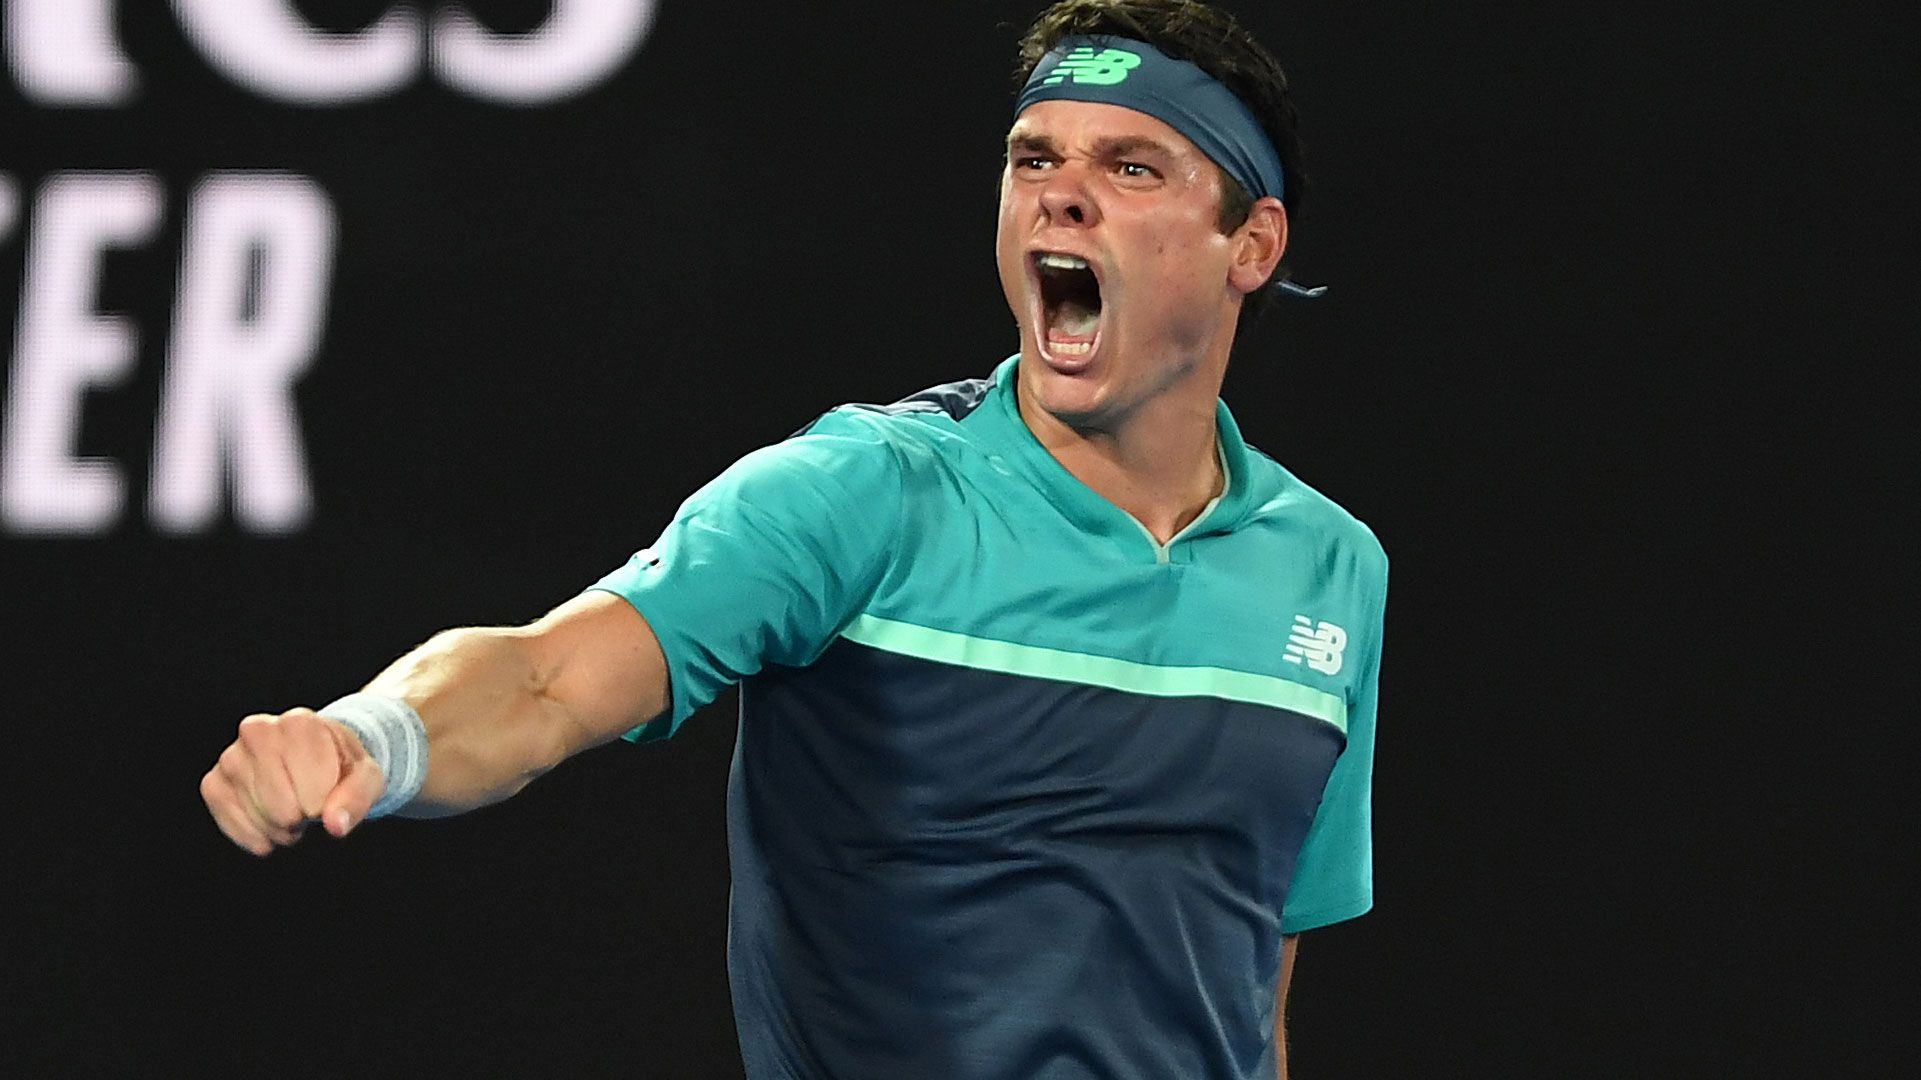 Milos Raonic's revealing post-match admission after winning epic over Stanislas Wawrinka